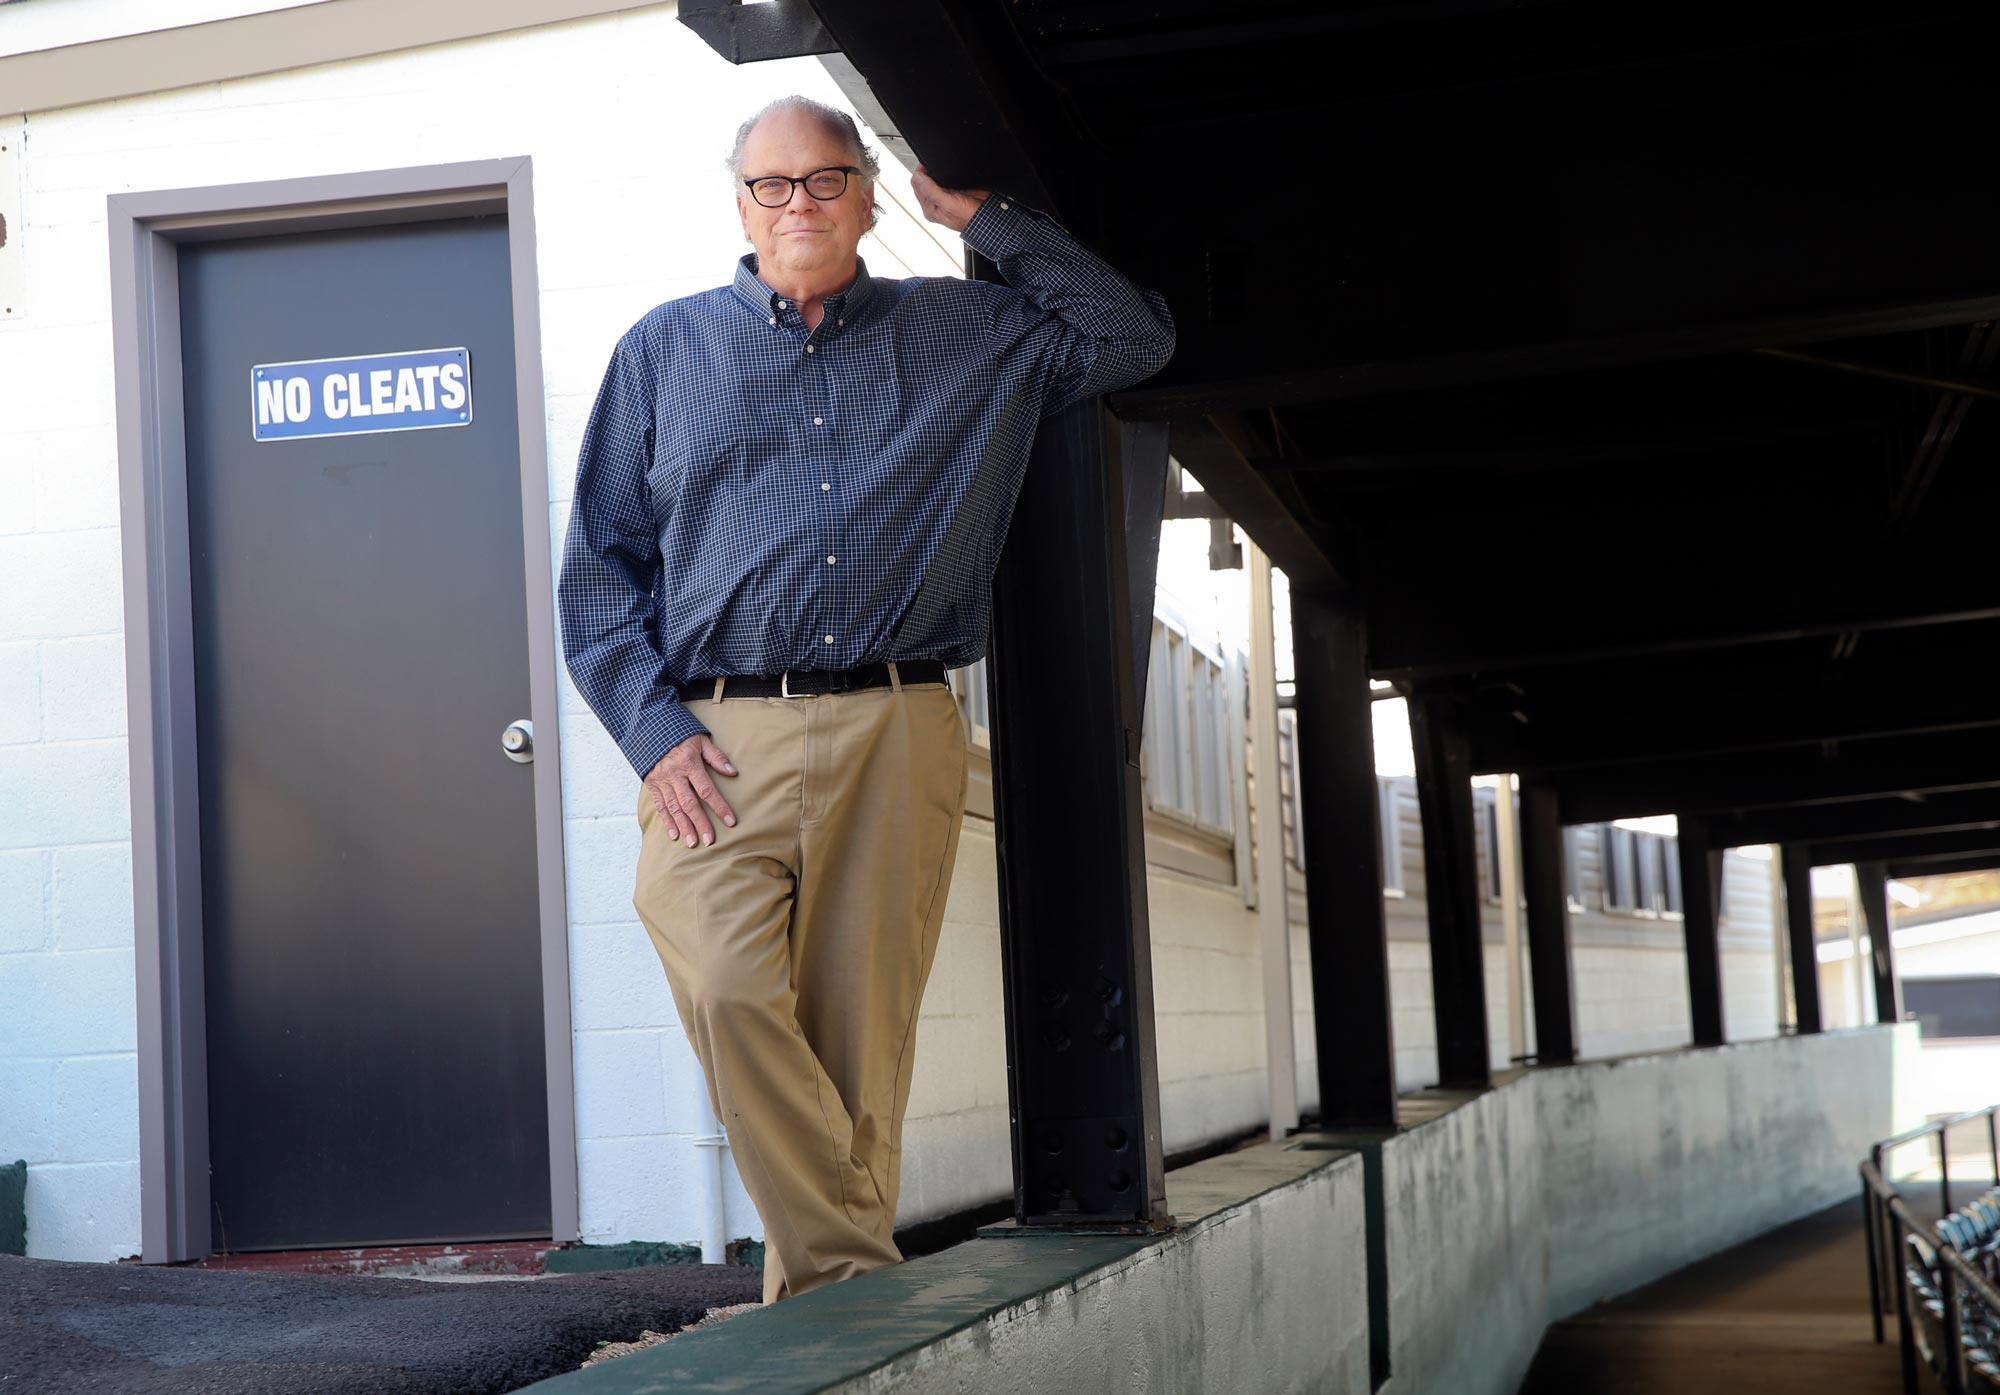 Hall of Fame sports writer Doug Doughty covered more than 2,000 UVA football and basketball games for the Roanoke Times. (Photo by Heather Rousseau, Roanoke Times)